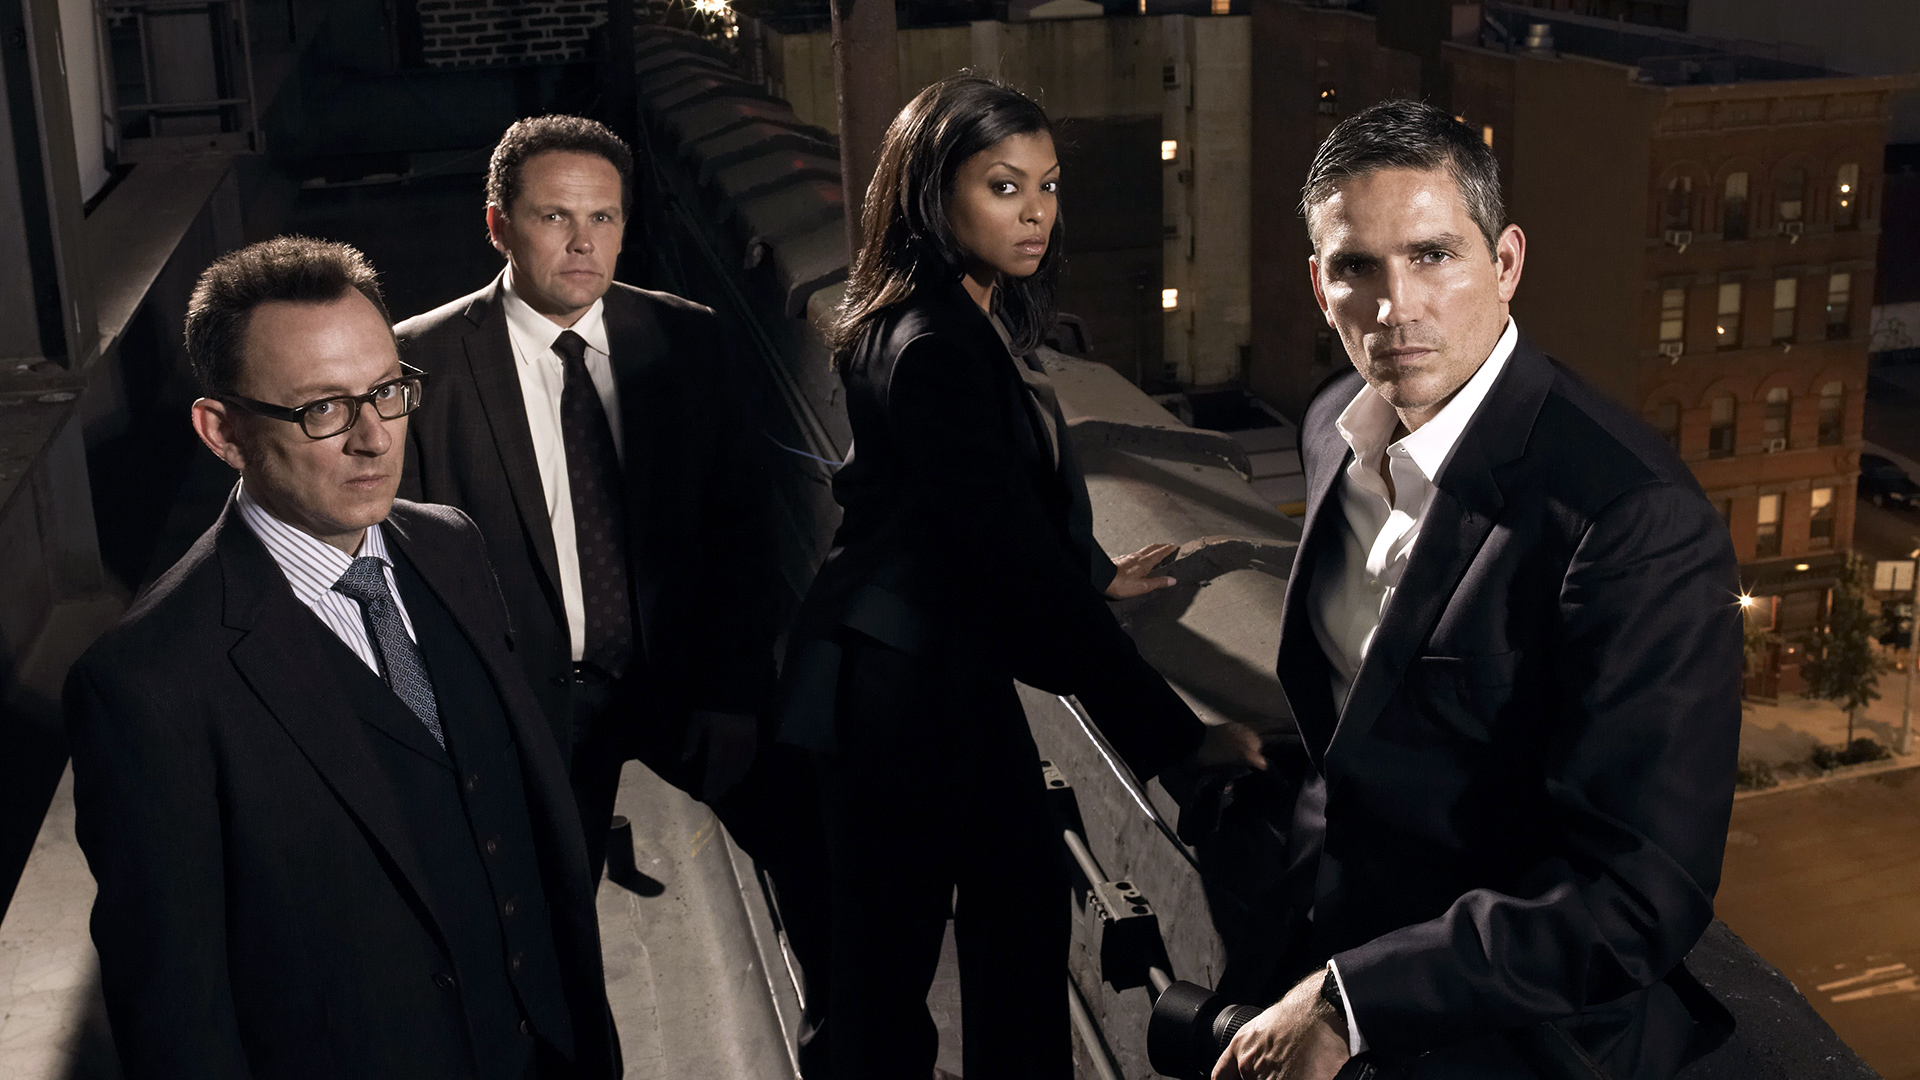 person of interest 3x21 ending a relationship